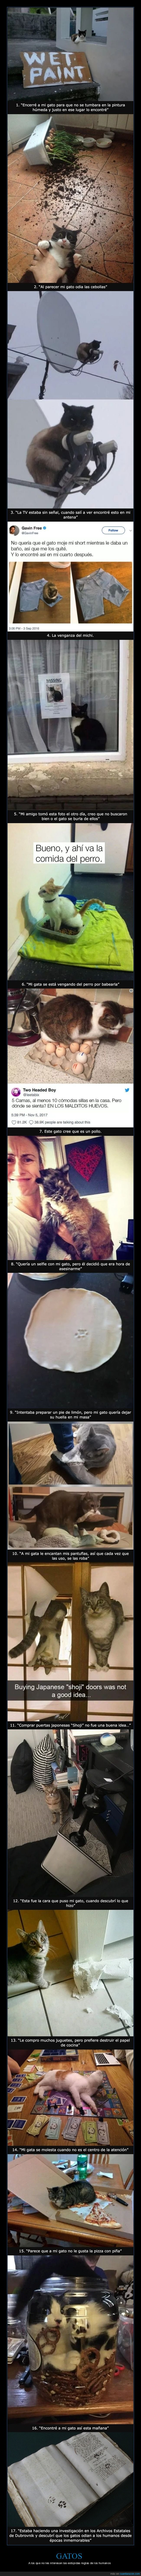 gatos,reglas.fails